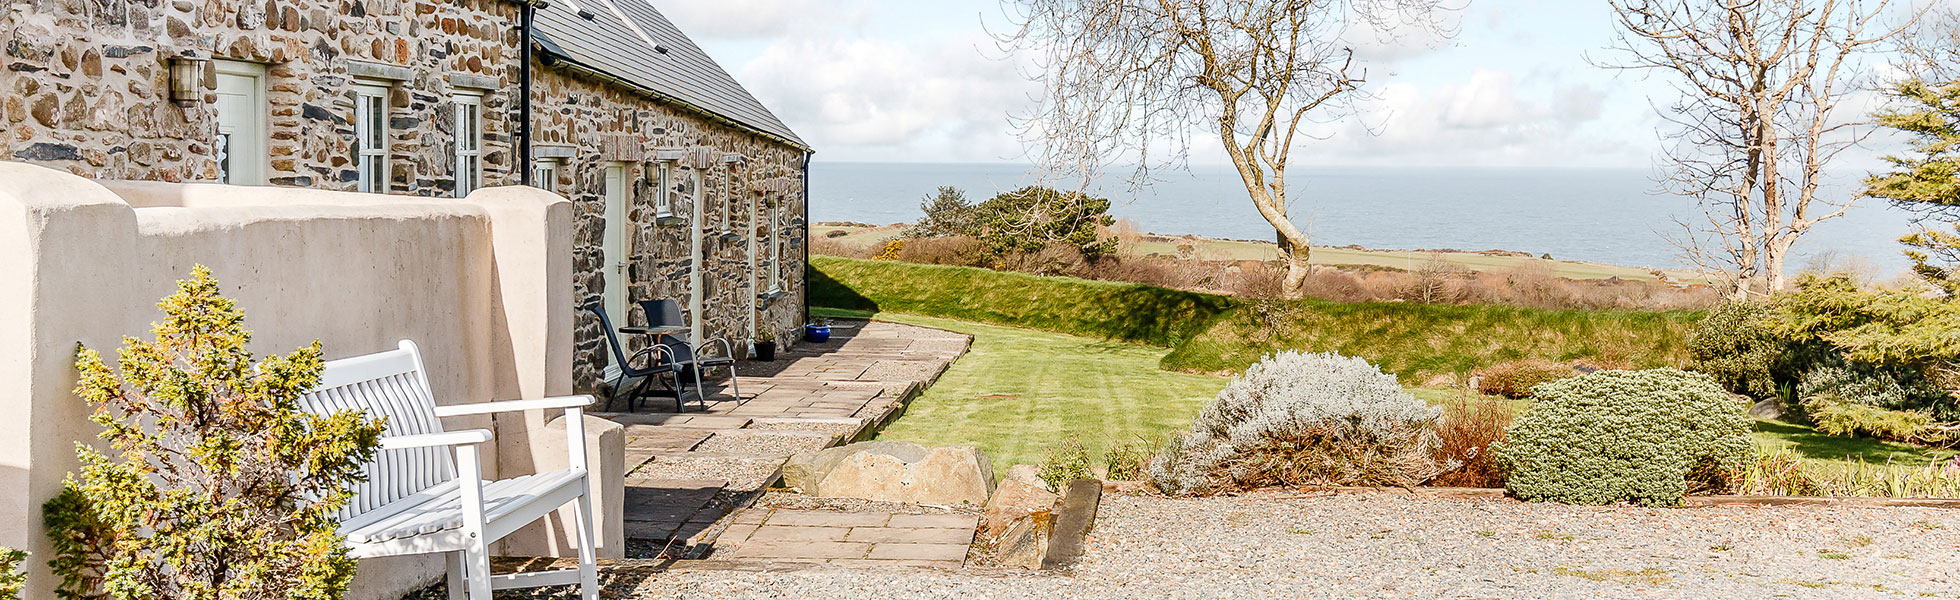 Yr Hafan Self catering and Bed & breakfast cottages